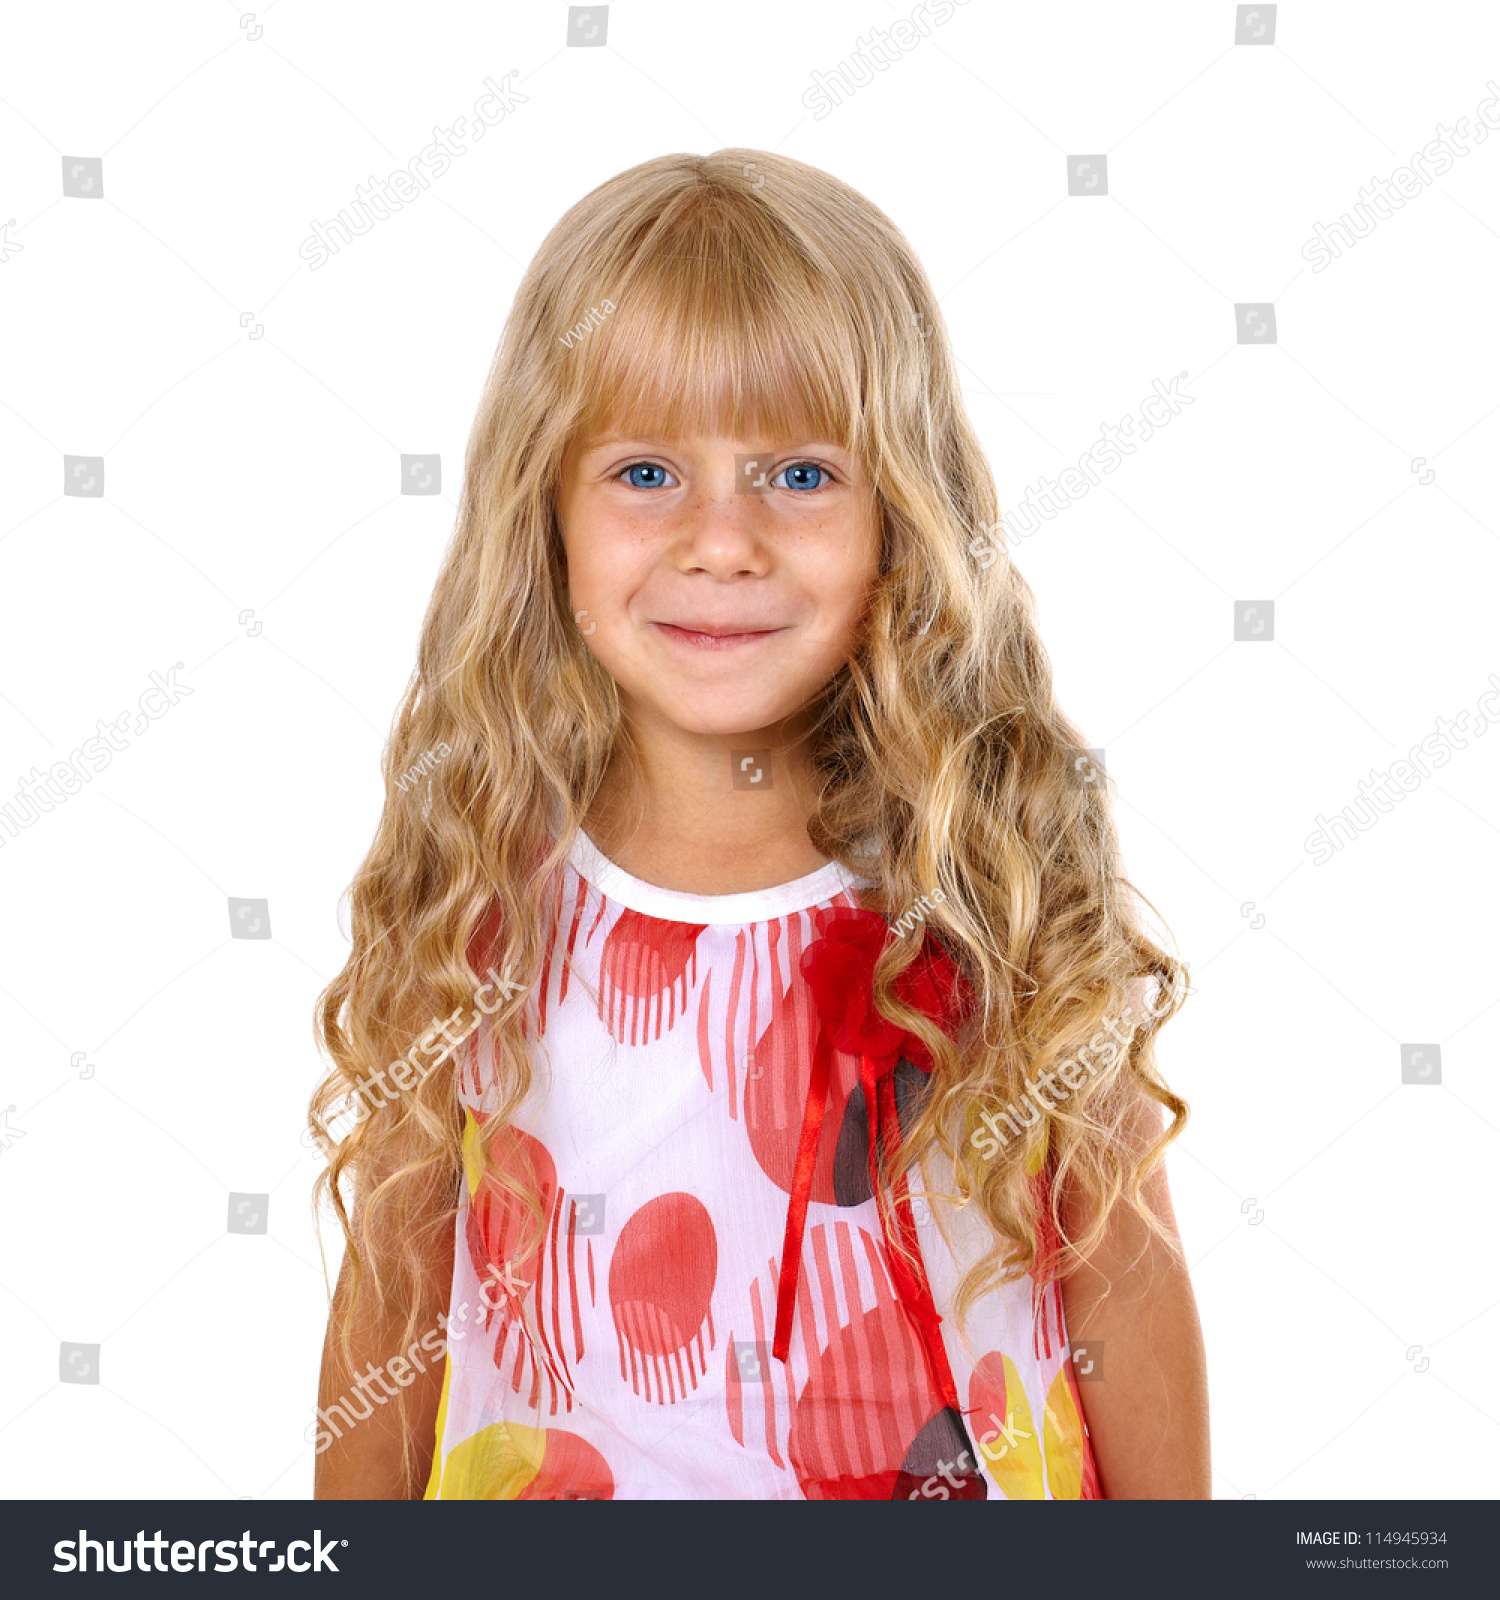 blonde little girl Beautiful little girl with long blonde hair